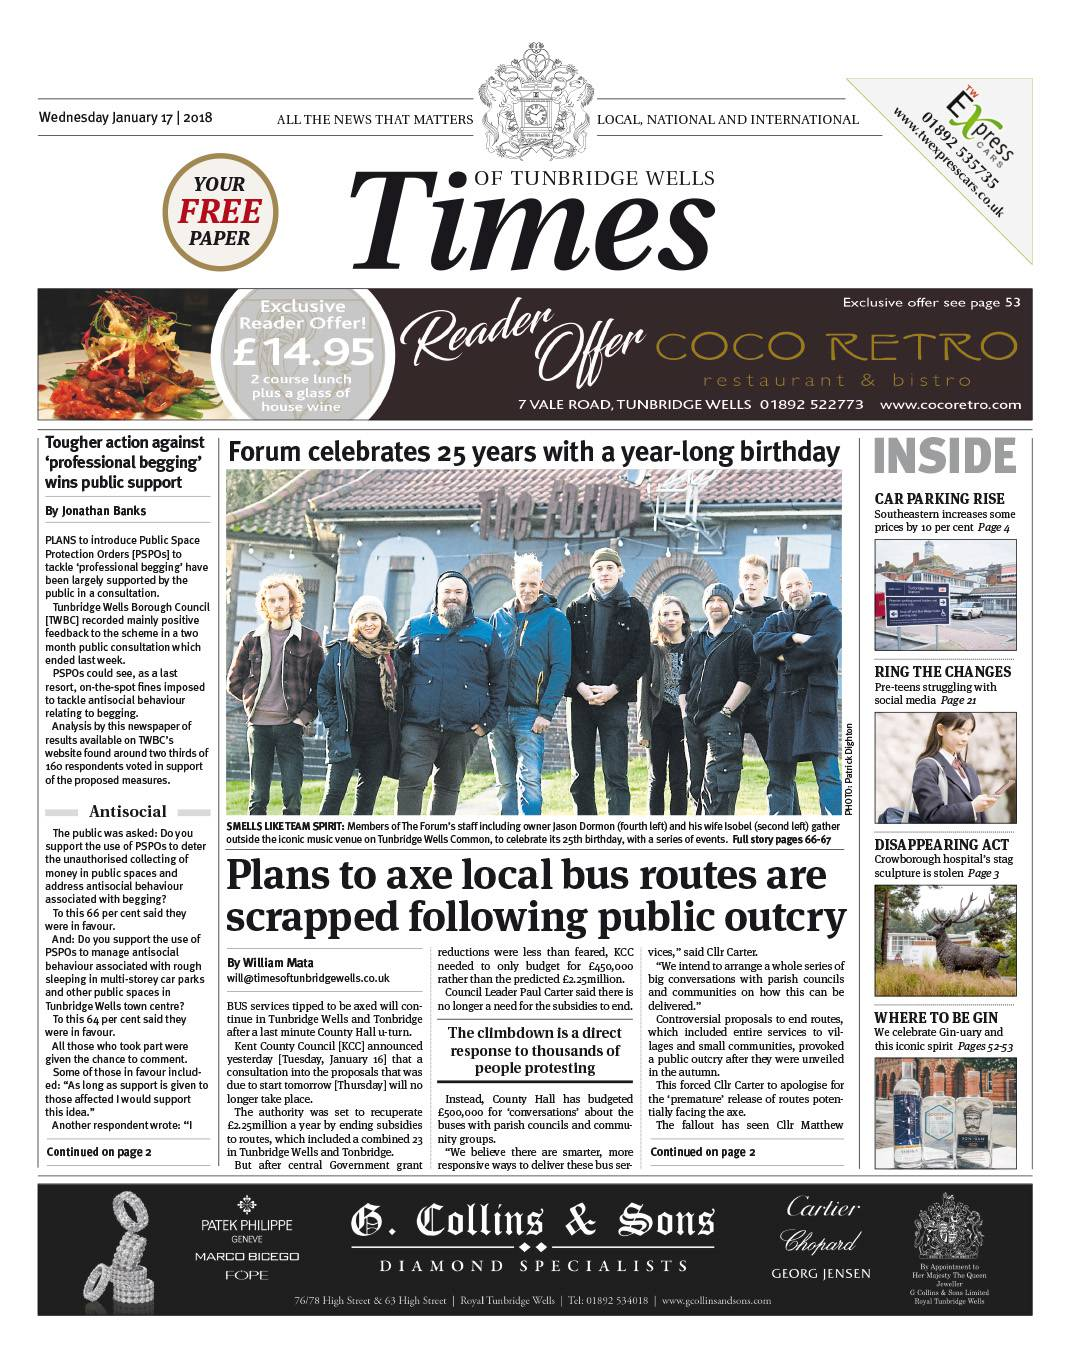 Read the Times of Tunbridge Wells 17th January 2018